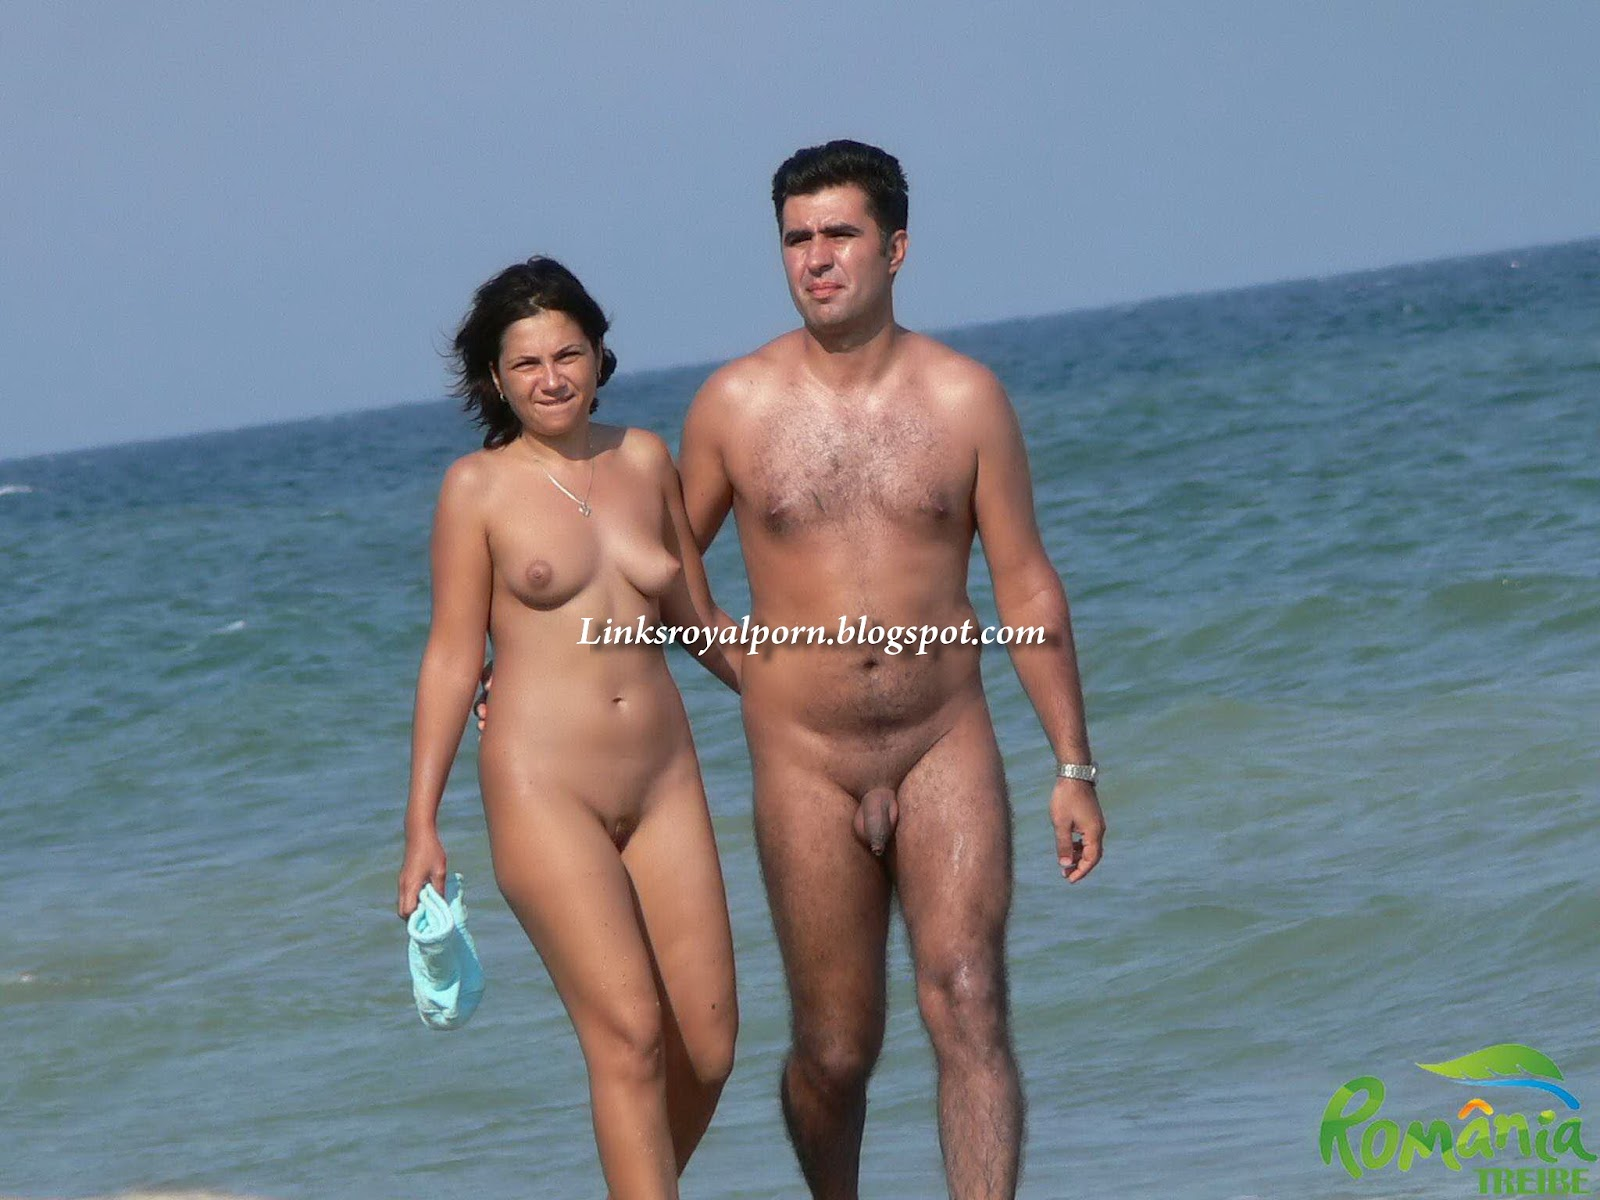 Indian boys hot and nude in beach  naked queen